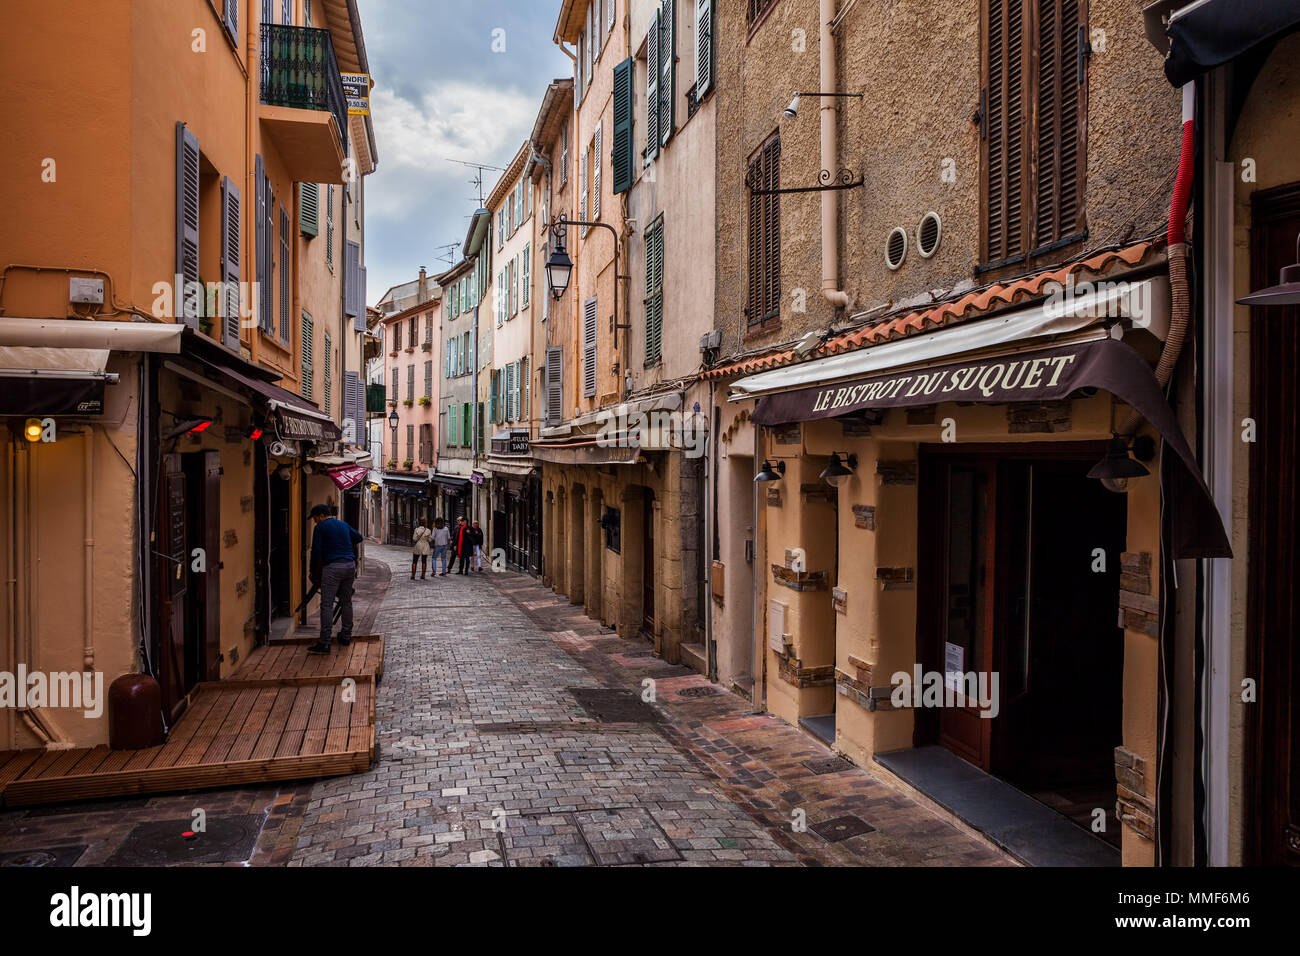 Narrow street in Le Suquet, Old Town of Cannes city in France, on the right Le Bistrot du Suquet restaurant - Stock Image